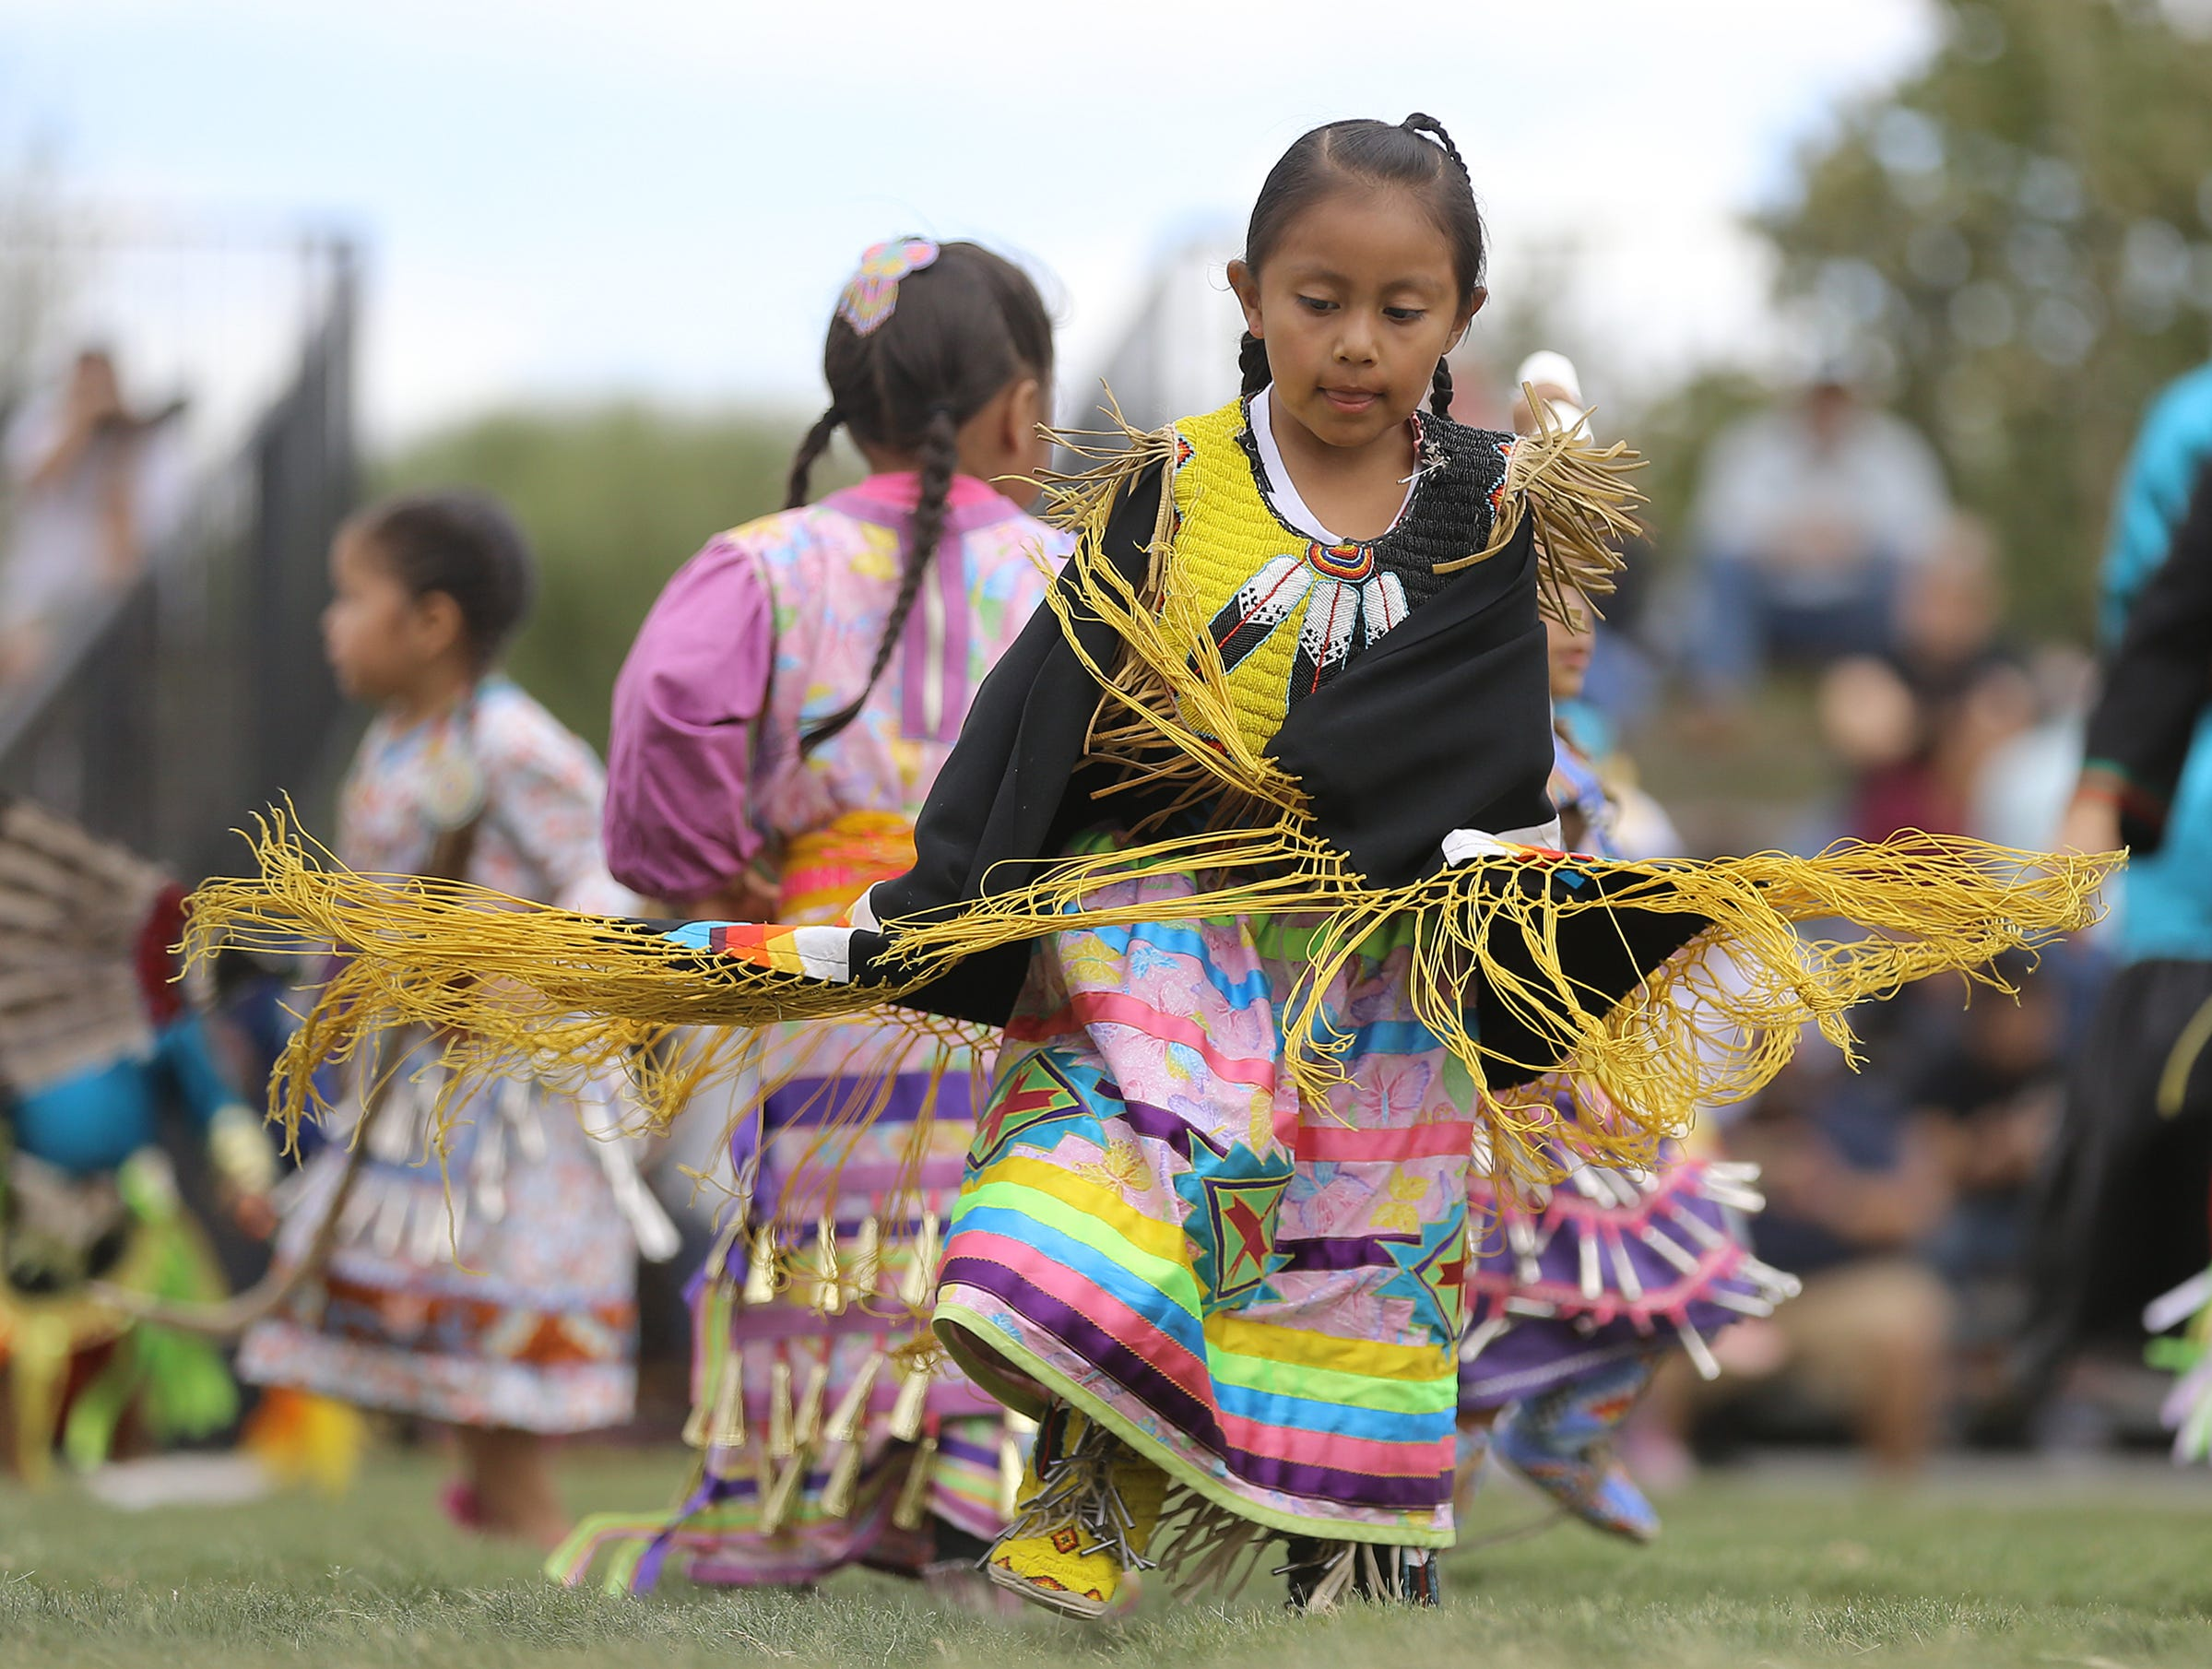 Tribes from all over the country descended on the Ysleta del Sur Pueblo for their annual Rocking the Rez Pow Wow this weekend. Youngsters dressed in traditional regalia of various tribes watched in awe as elders competed in dance before taking their turn in the circle.  Bleachers were full of onlookers in awe of the beautiful culture being shared by several tribes.